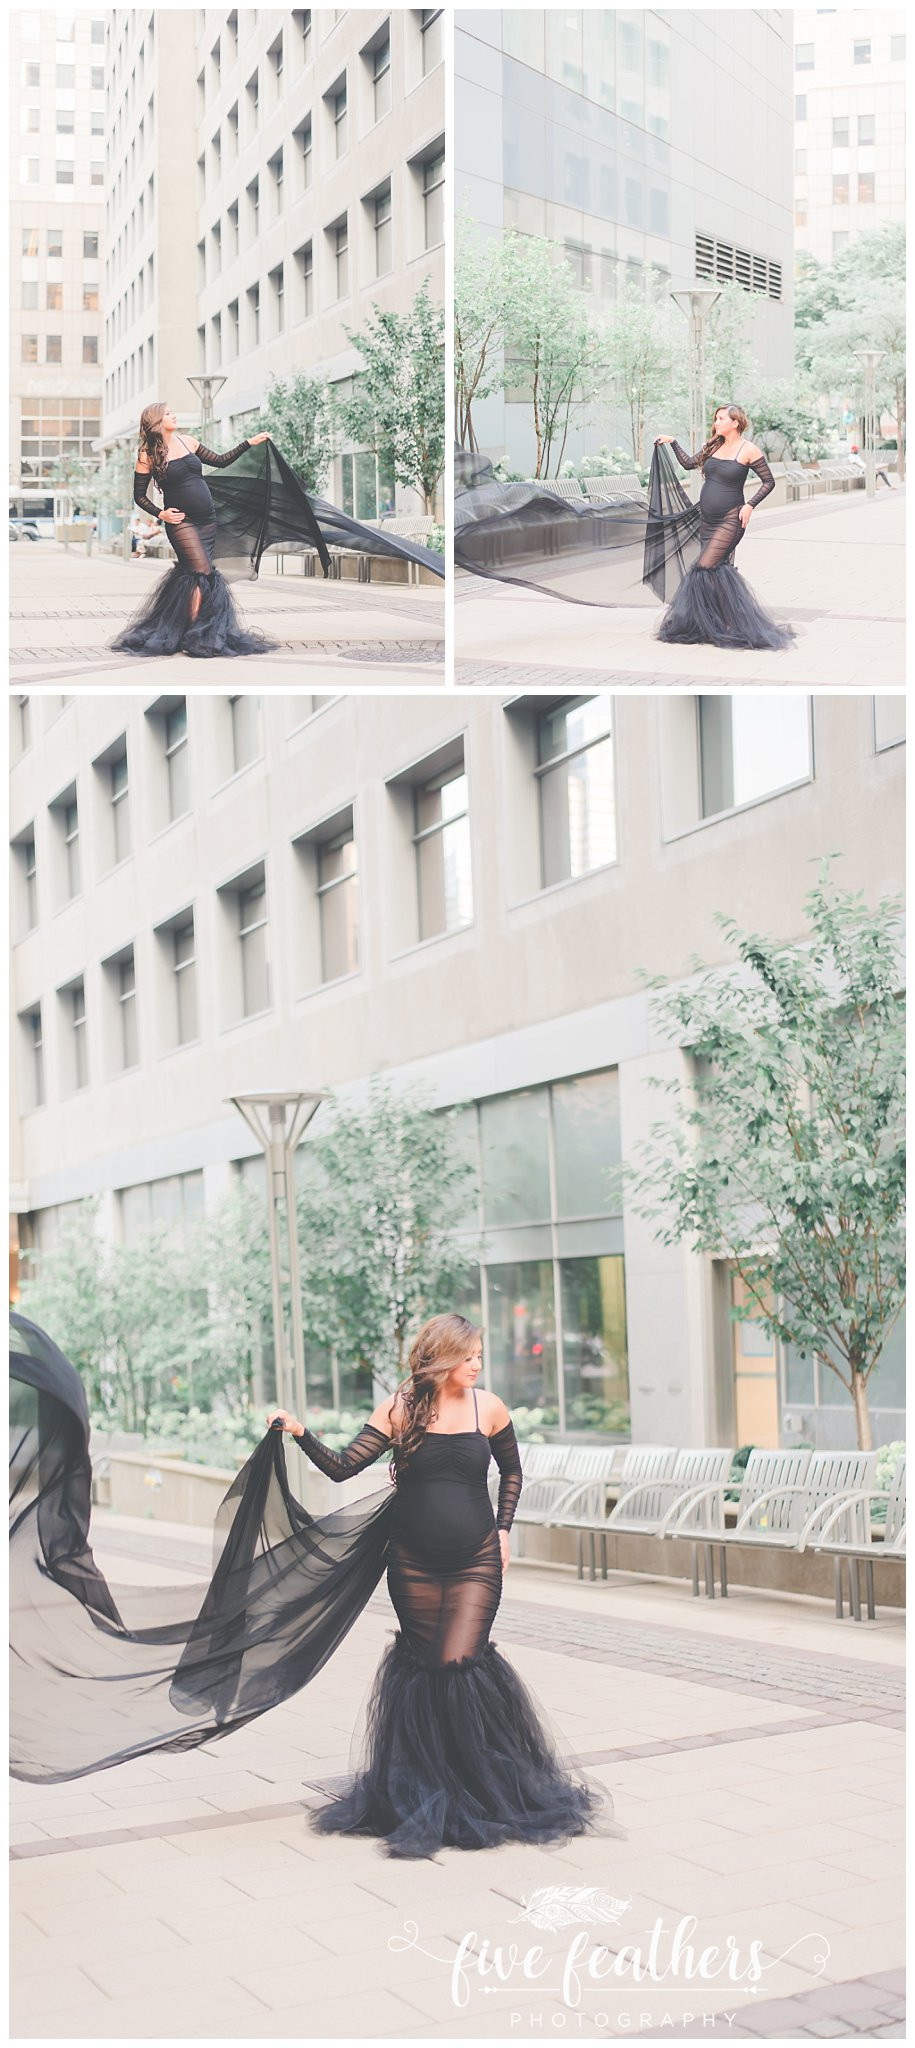 light and airy city maternity photo session